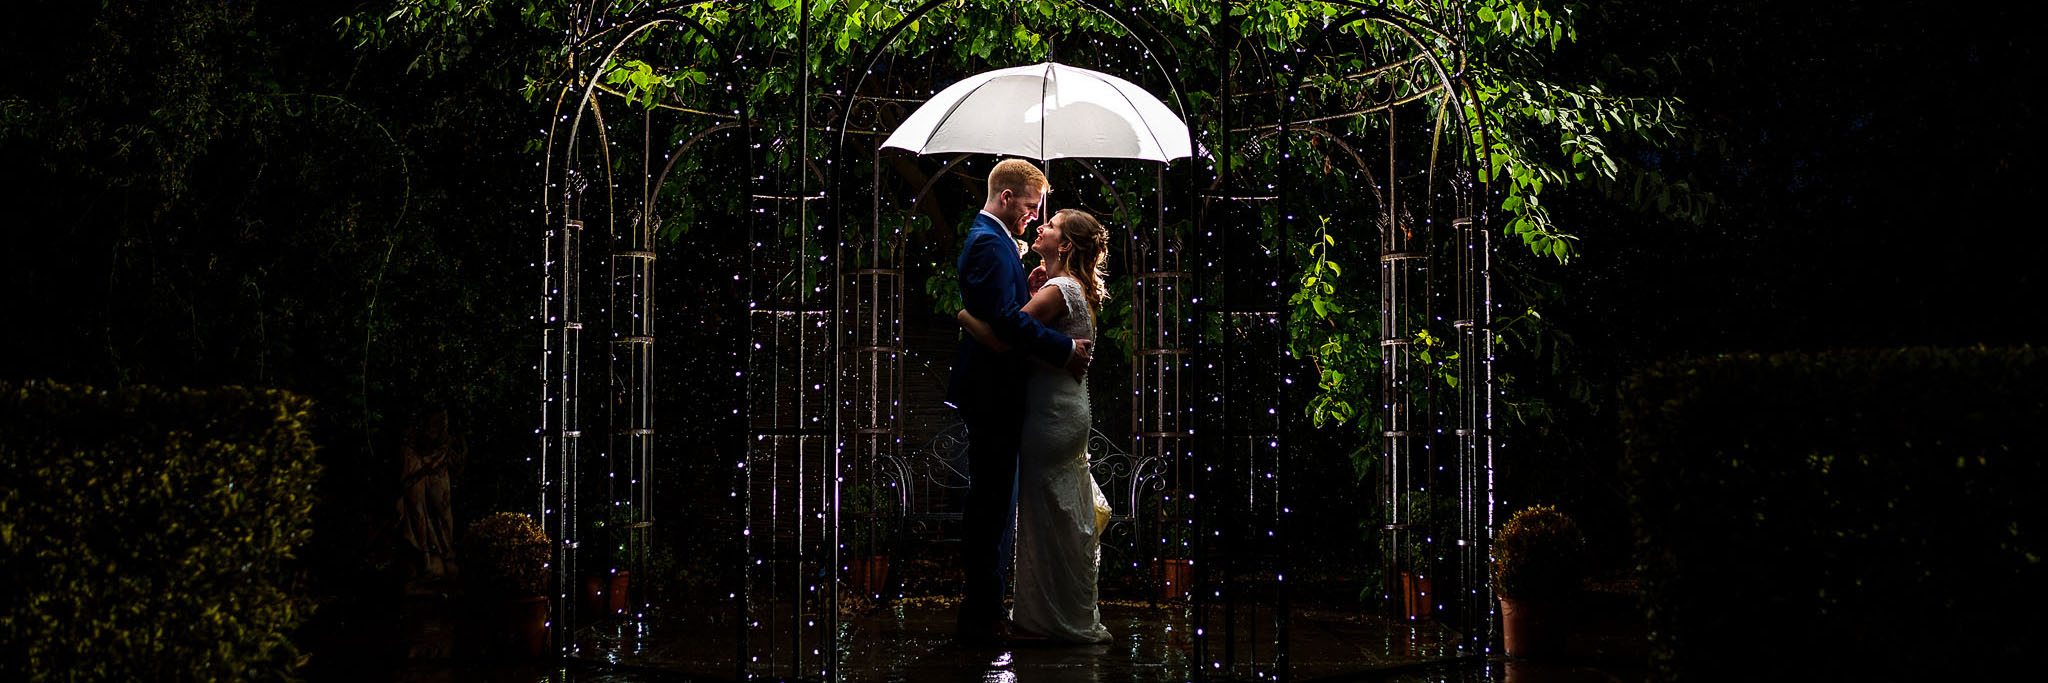 bride and groom portrait under an umbrella at night